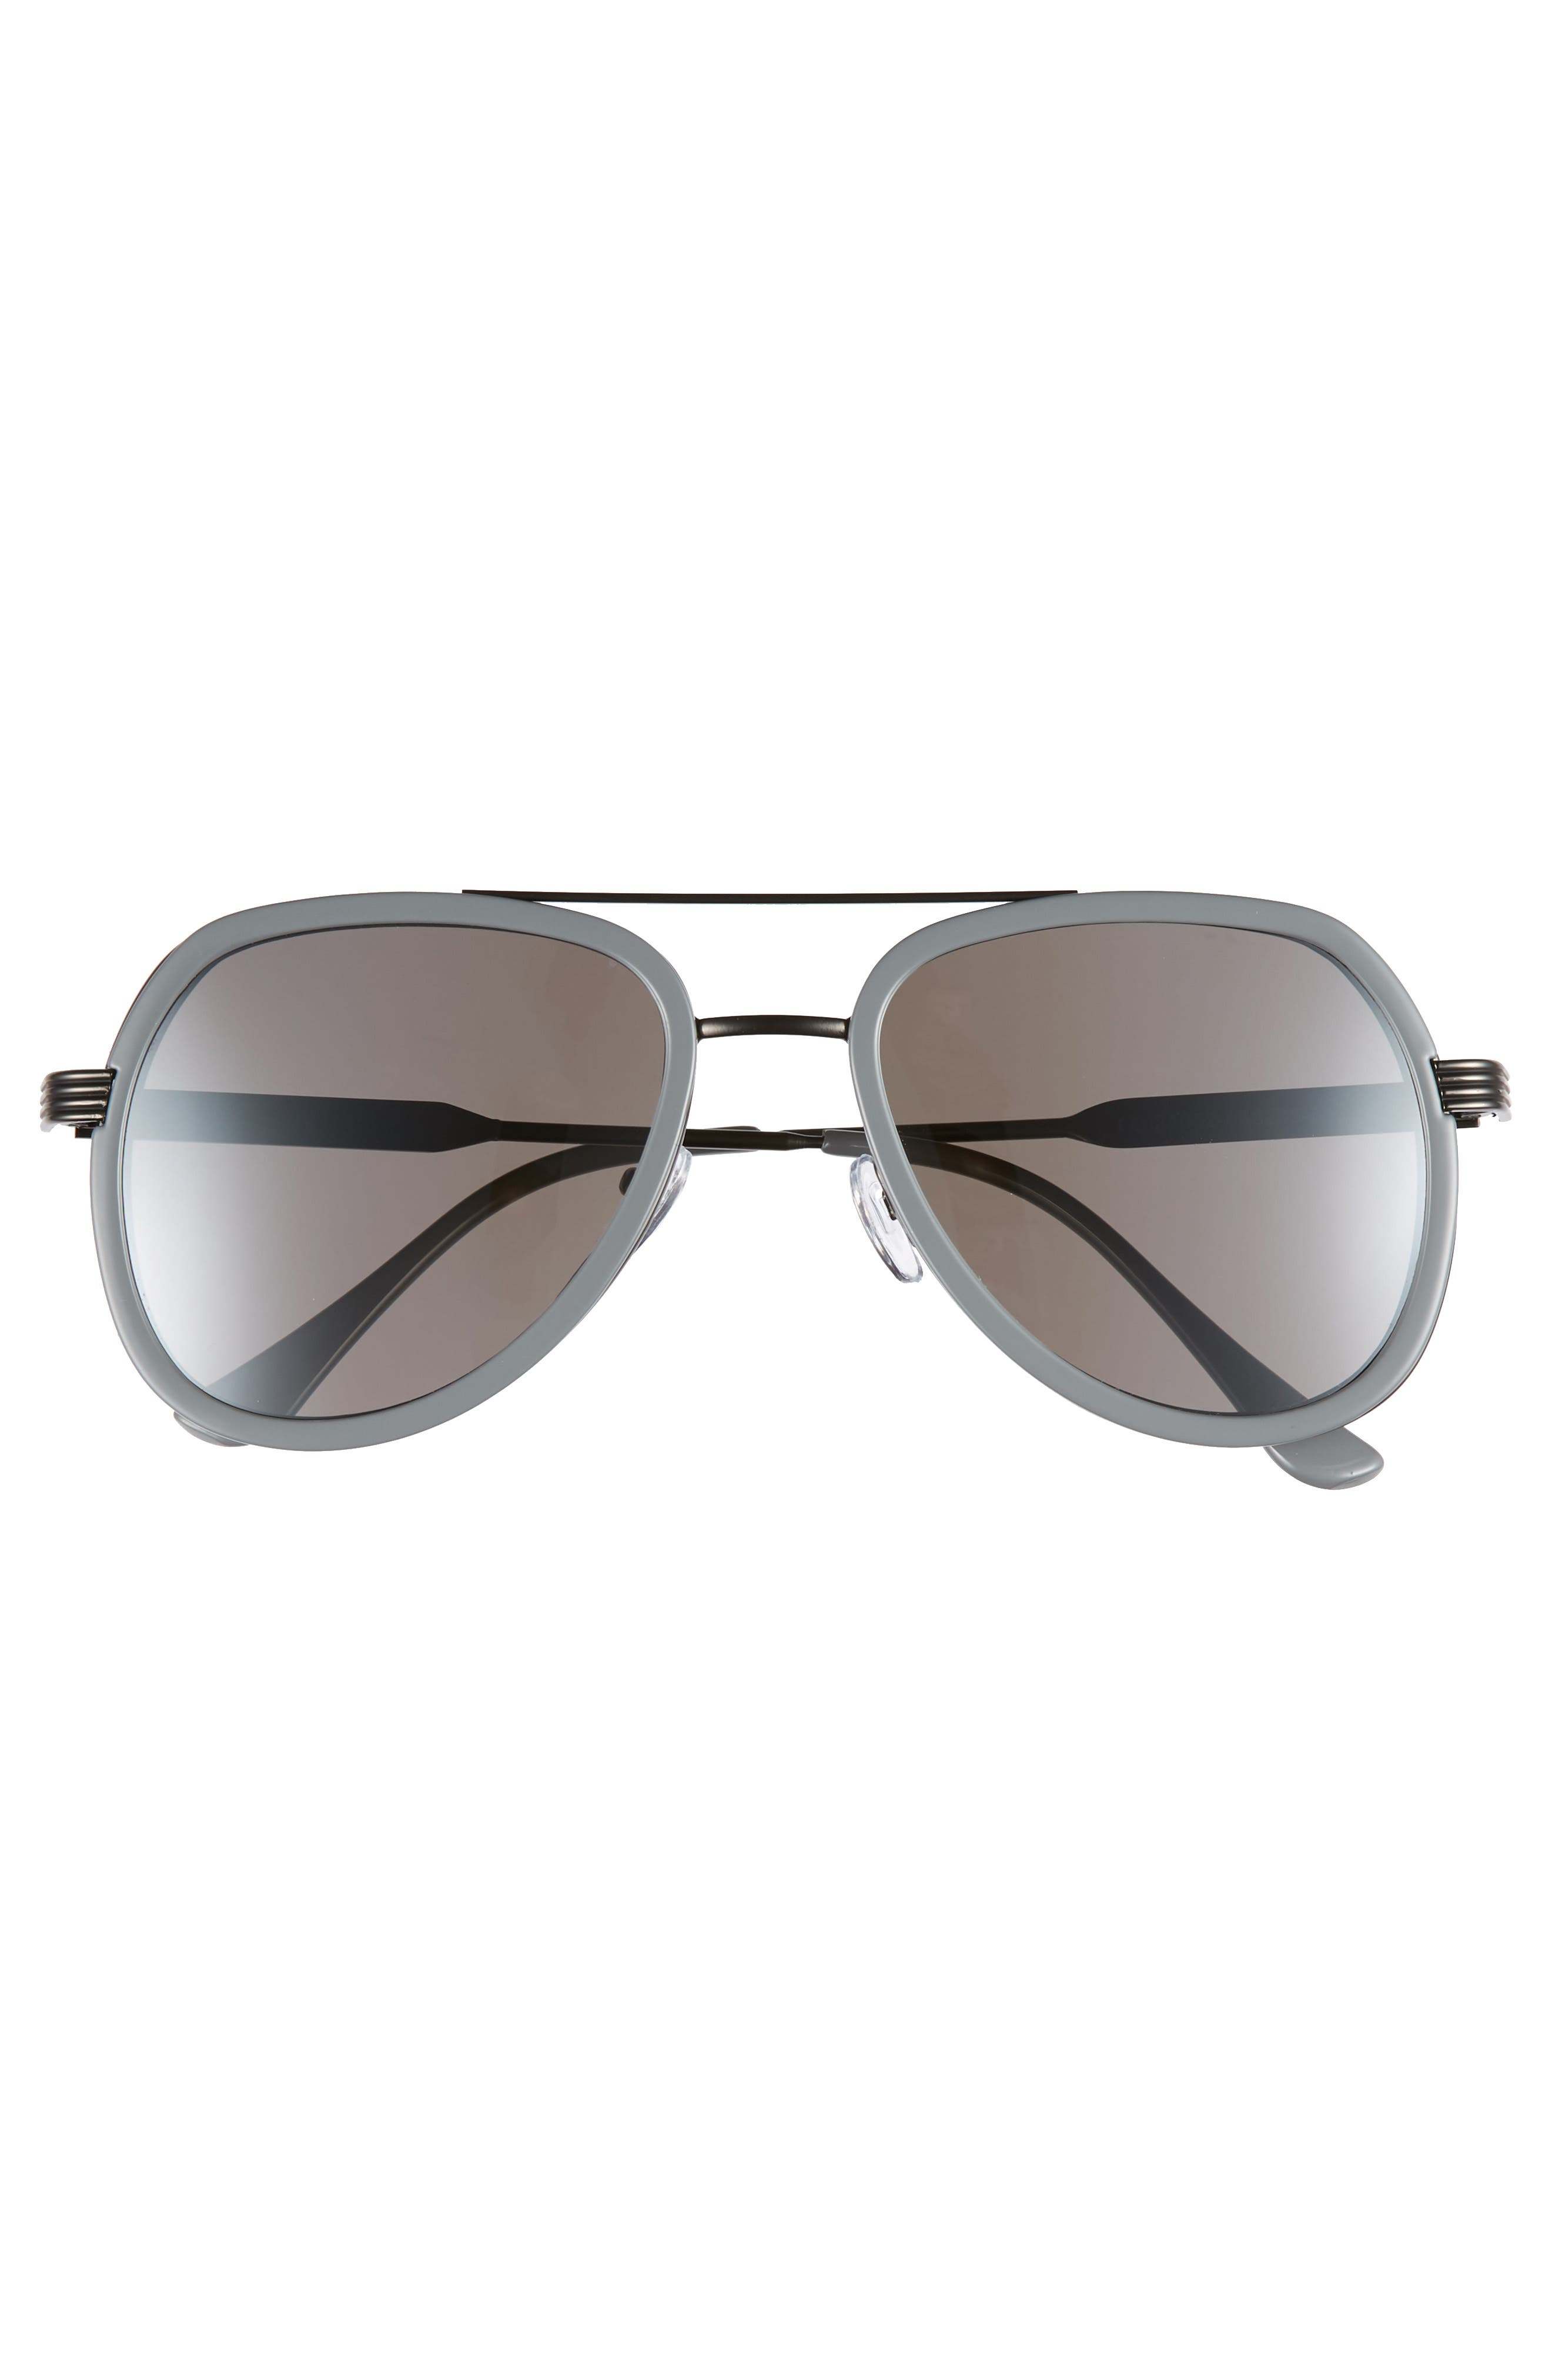 50mm Aviator Sunglasses,                             Alternate thumbnail 3, color,                             GREY